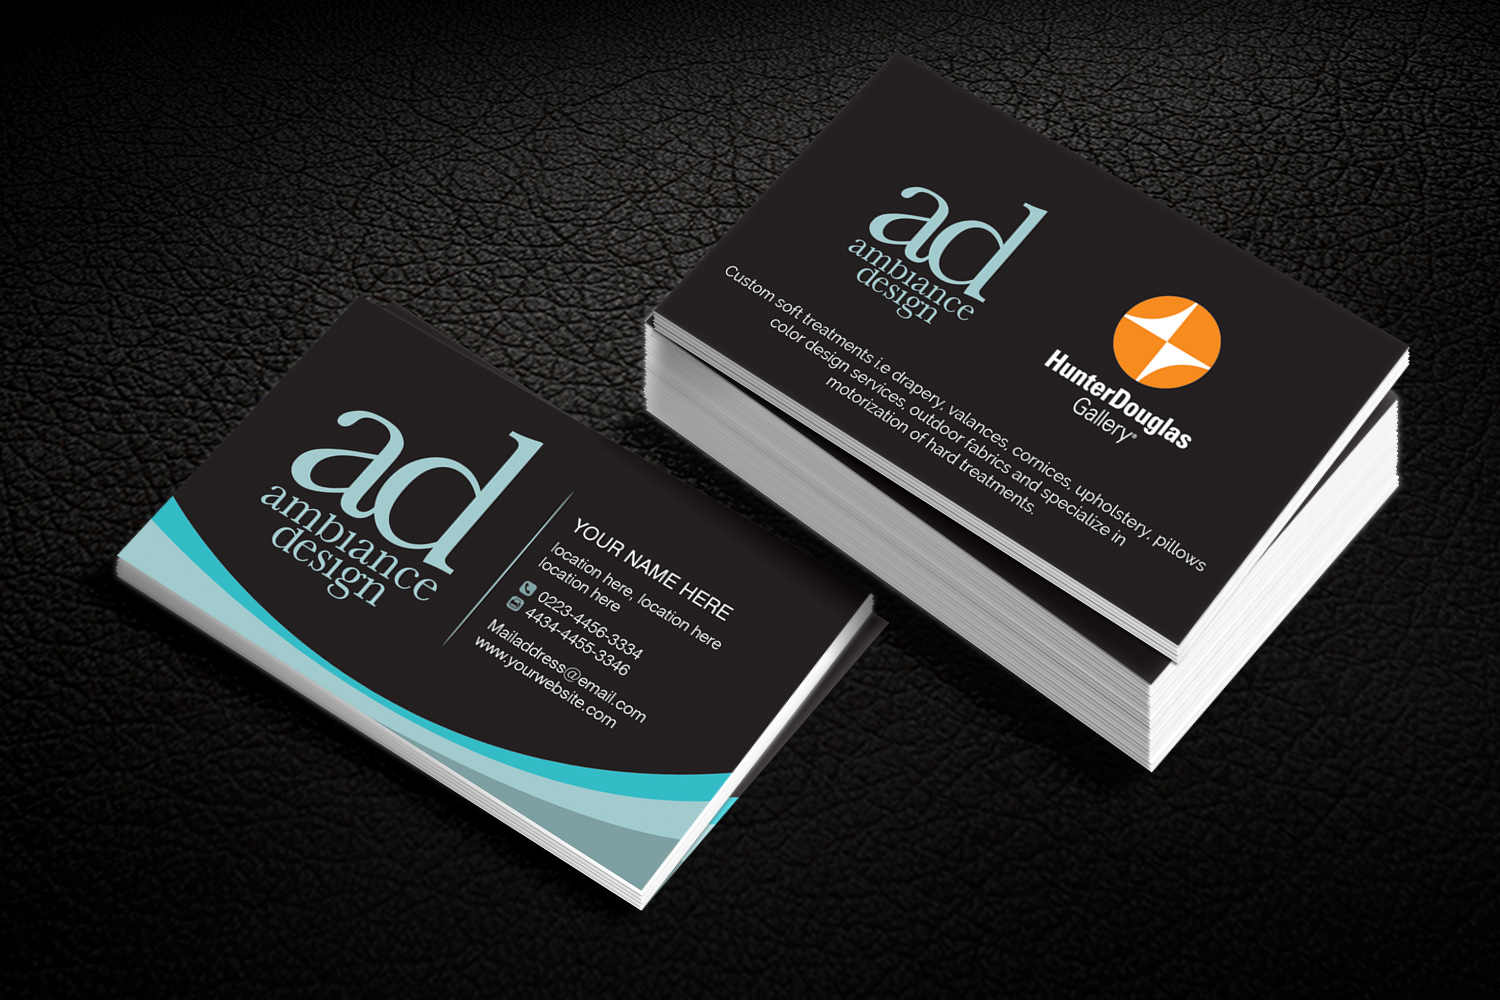 Serious, Professional, Home Improvement Business Card Design for ...